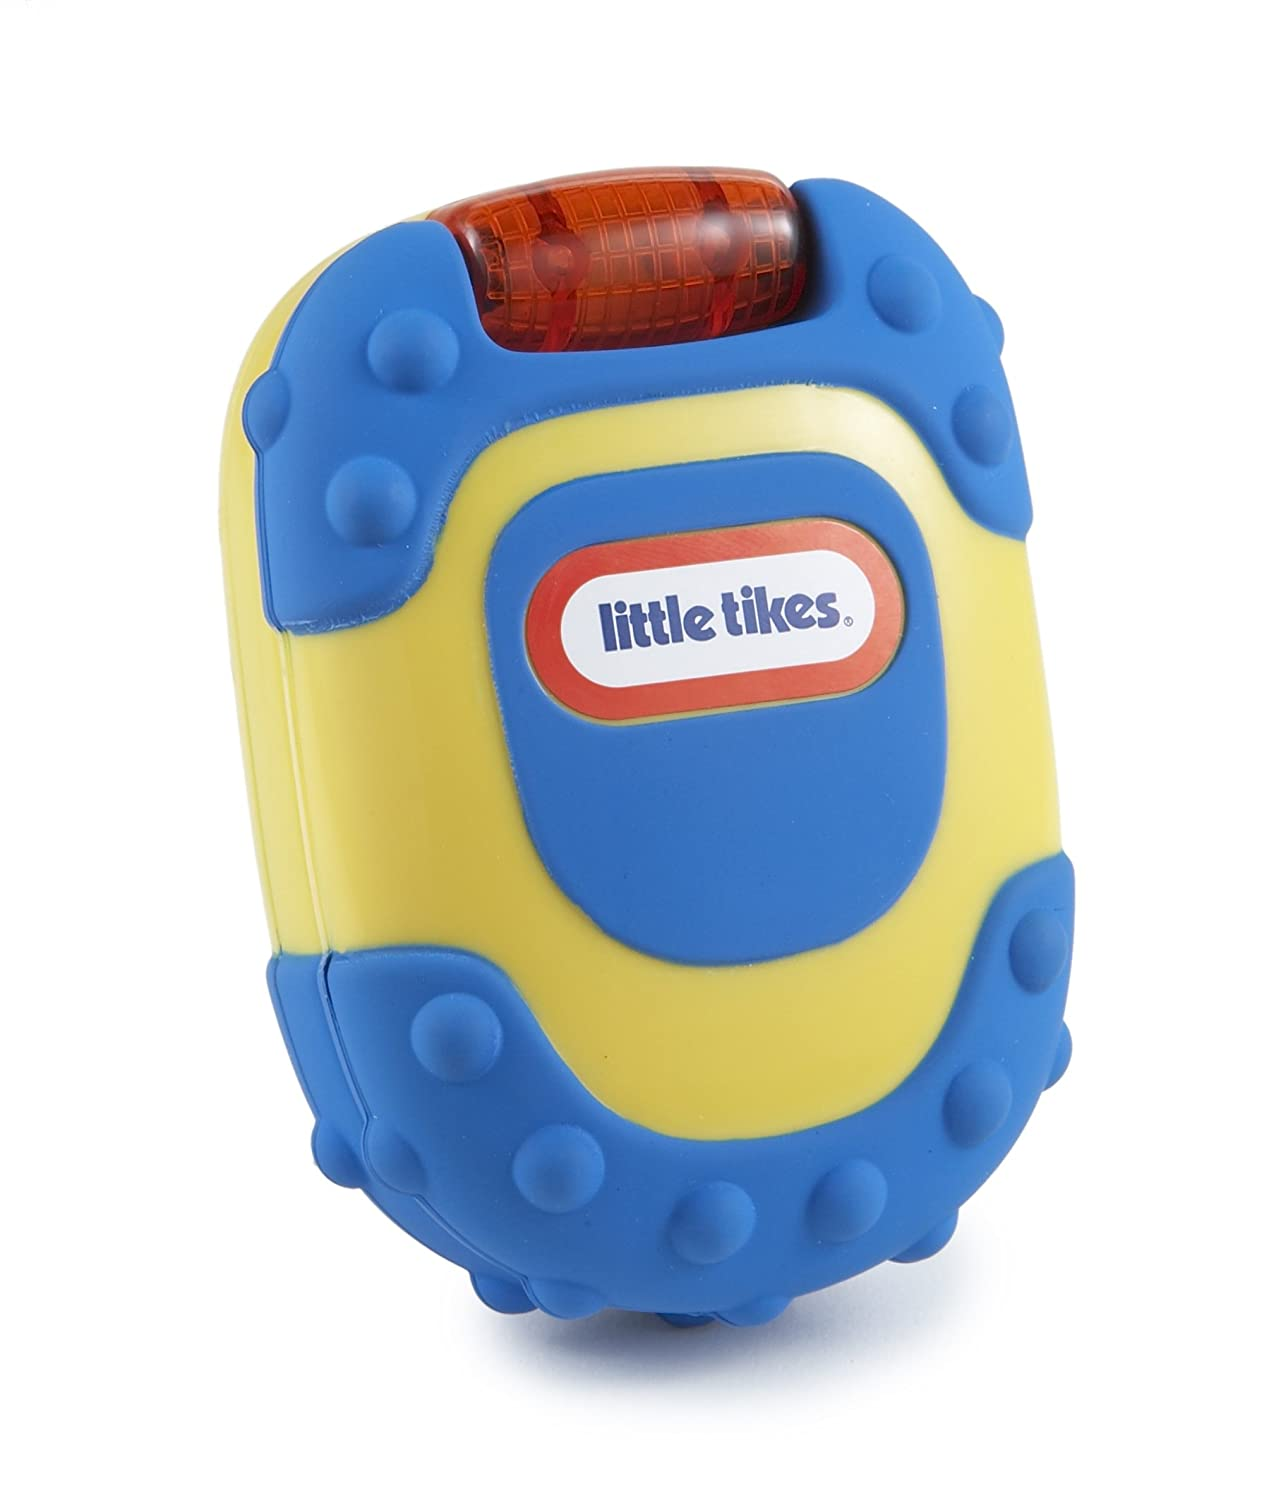 Little tikes cash register - Little Tikes Cash Register 37